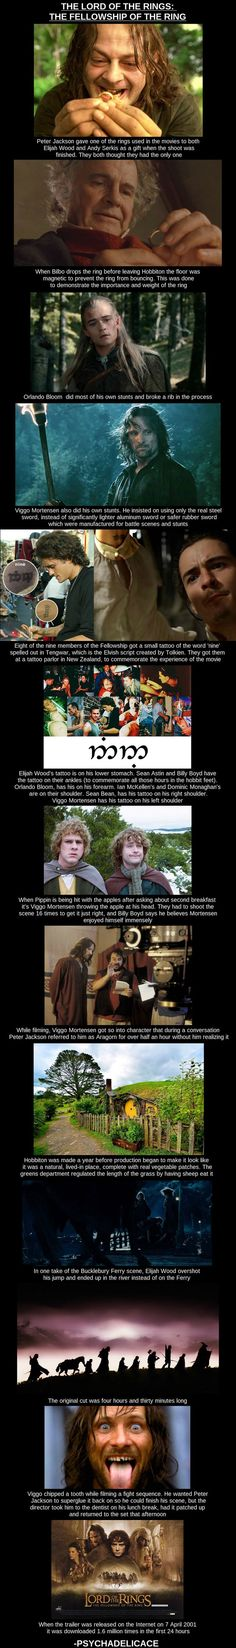 The Fellowship Of The Ring fun facts. Possibly my favourite one to date!